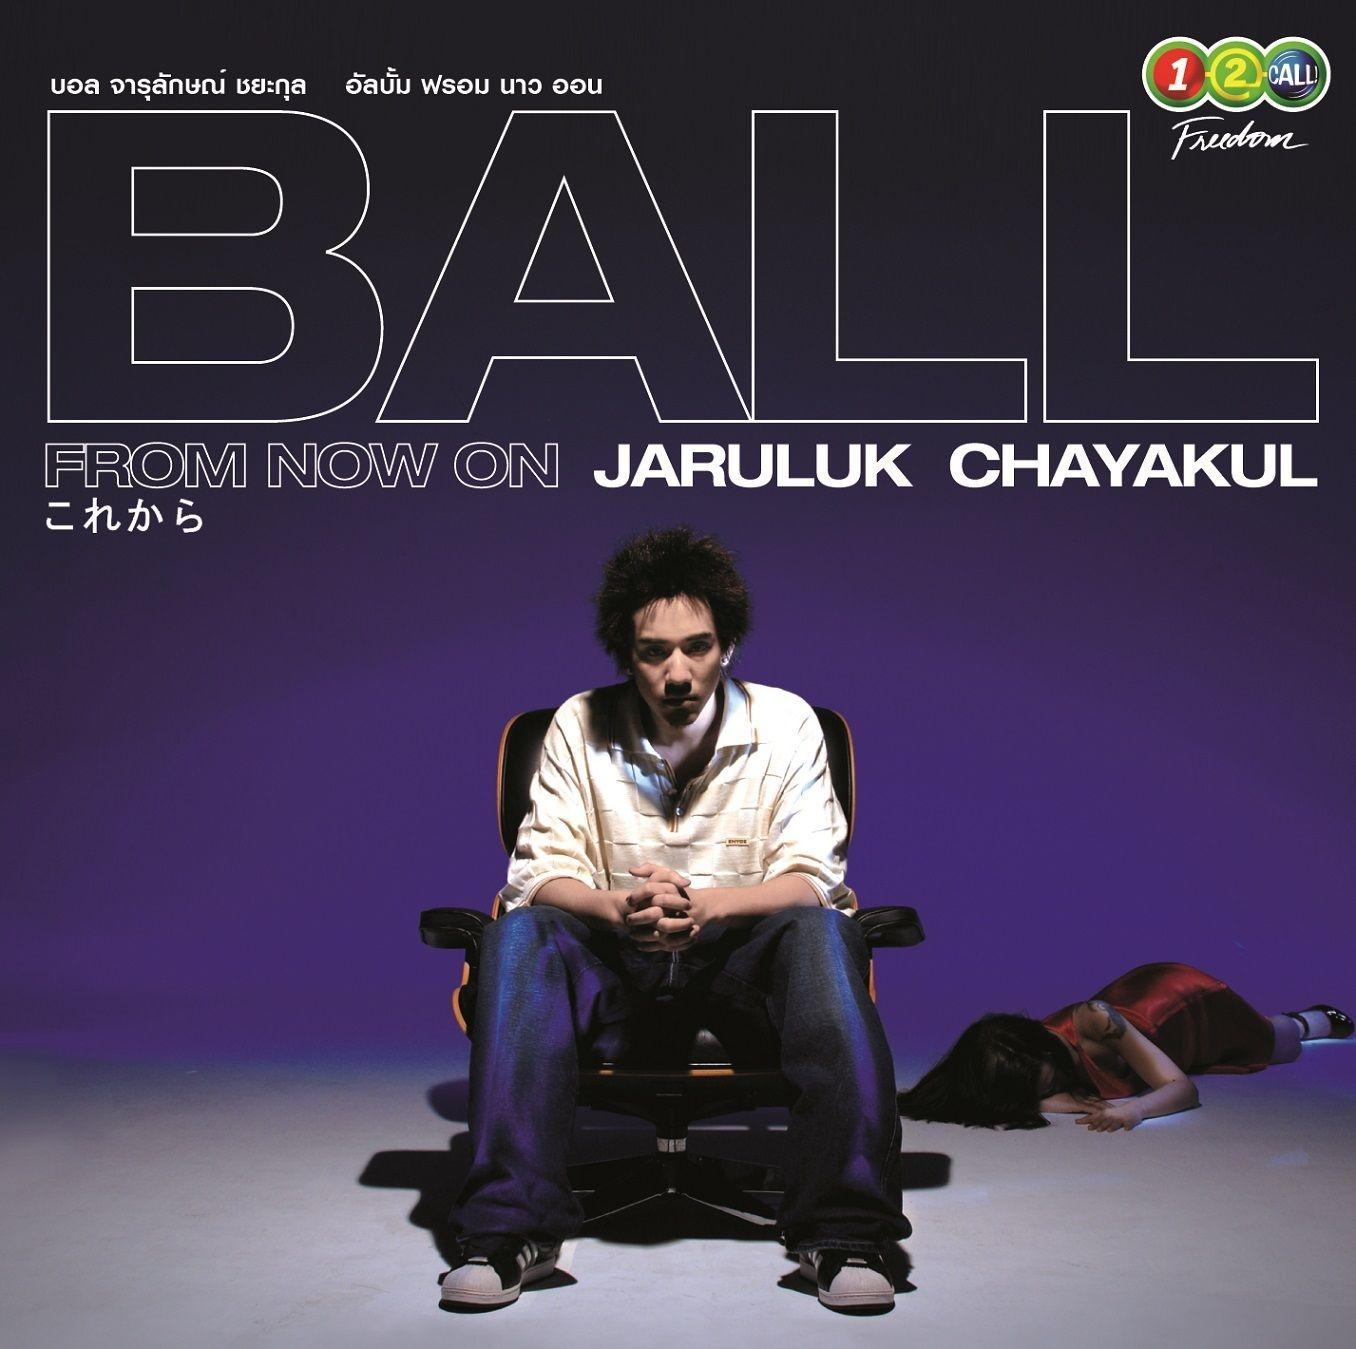 CD-FROM NOW ON / BALL JARULUK